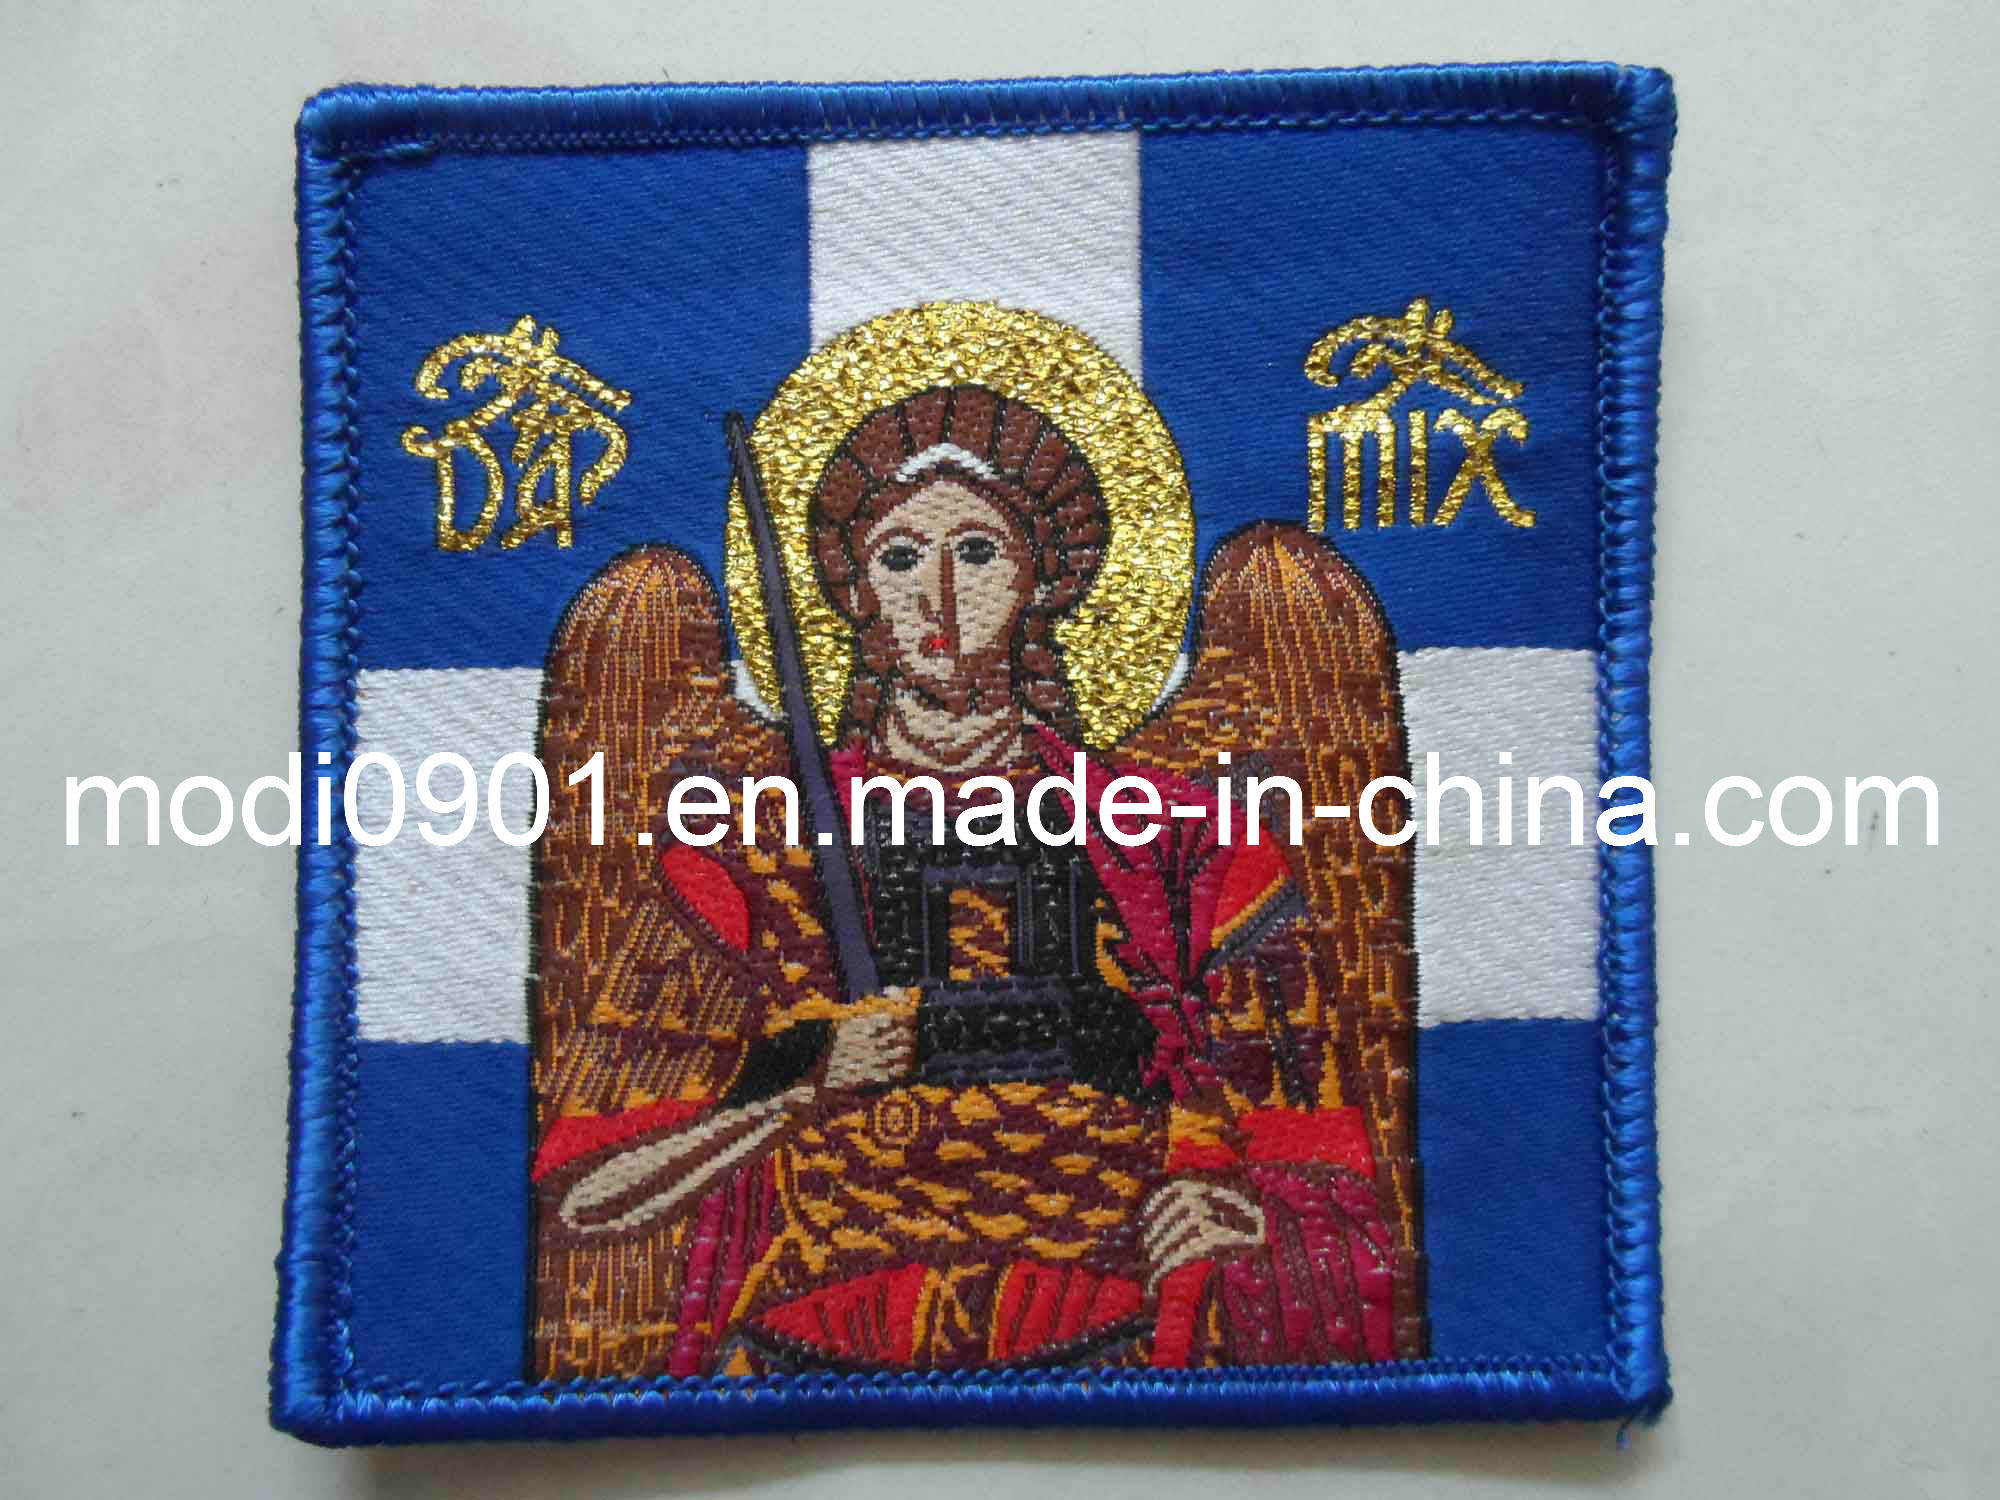 Custom Sew Woven Labels Clothing Professional Clothing Label Manufacturer Knitted Emblem- Satin Label